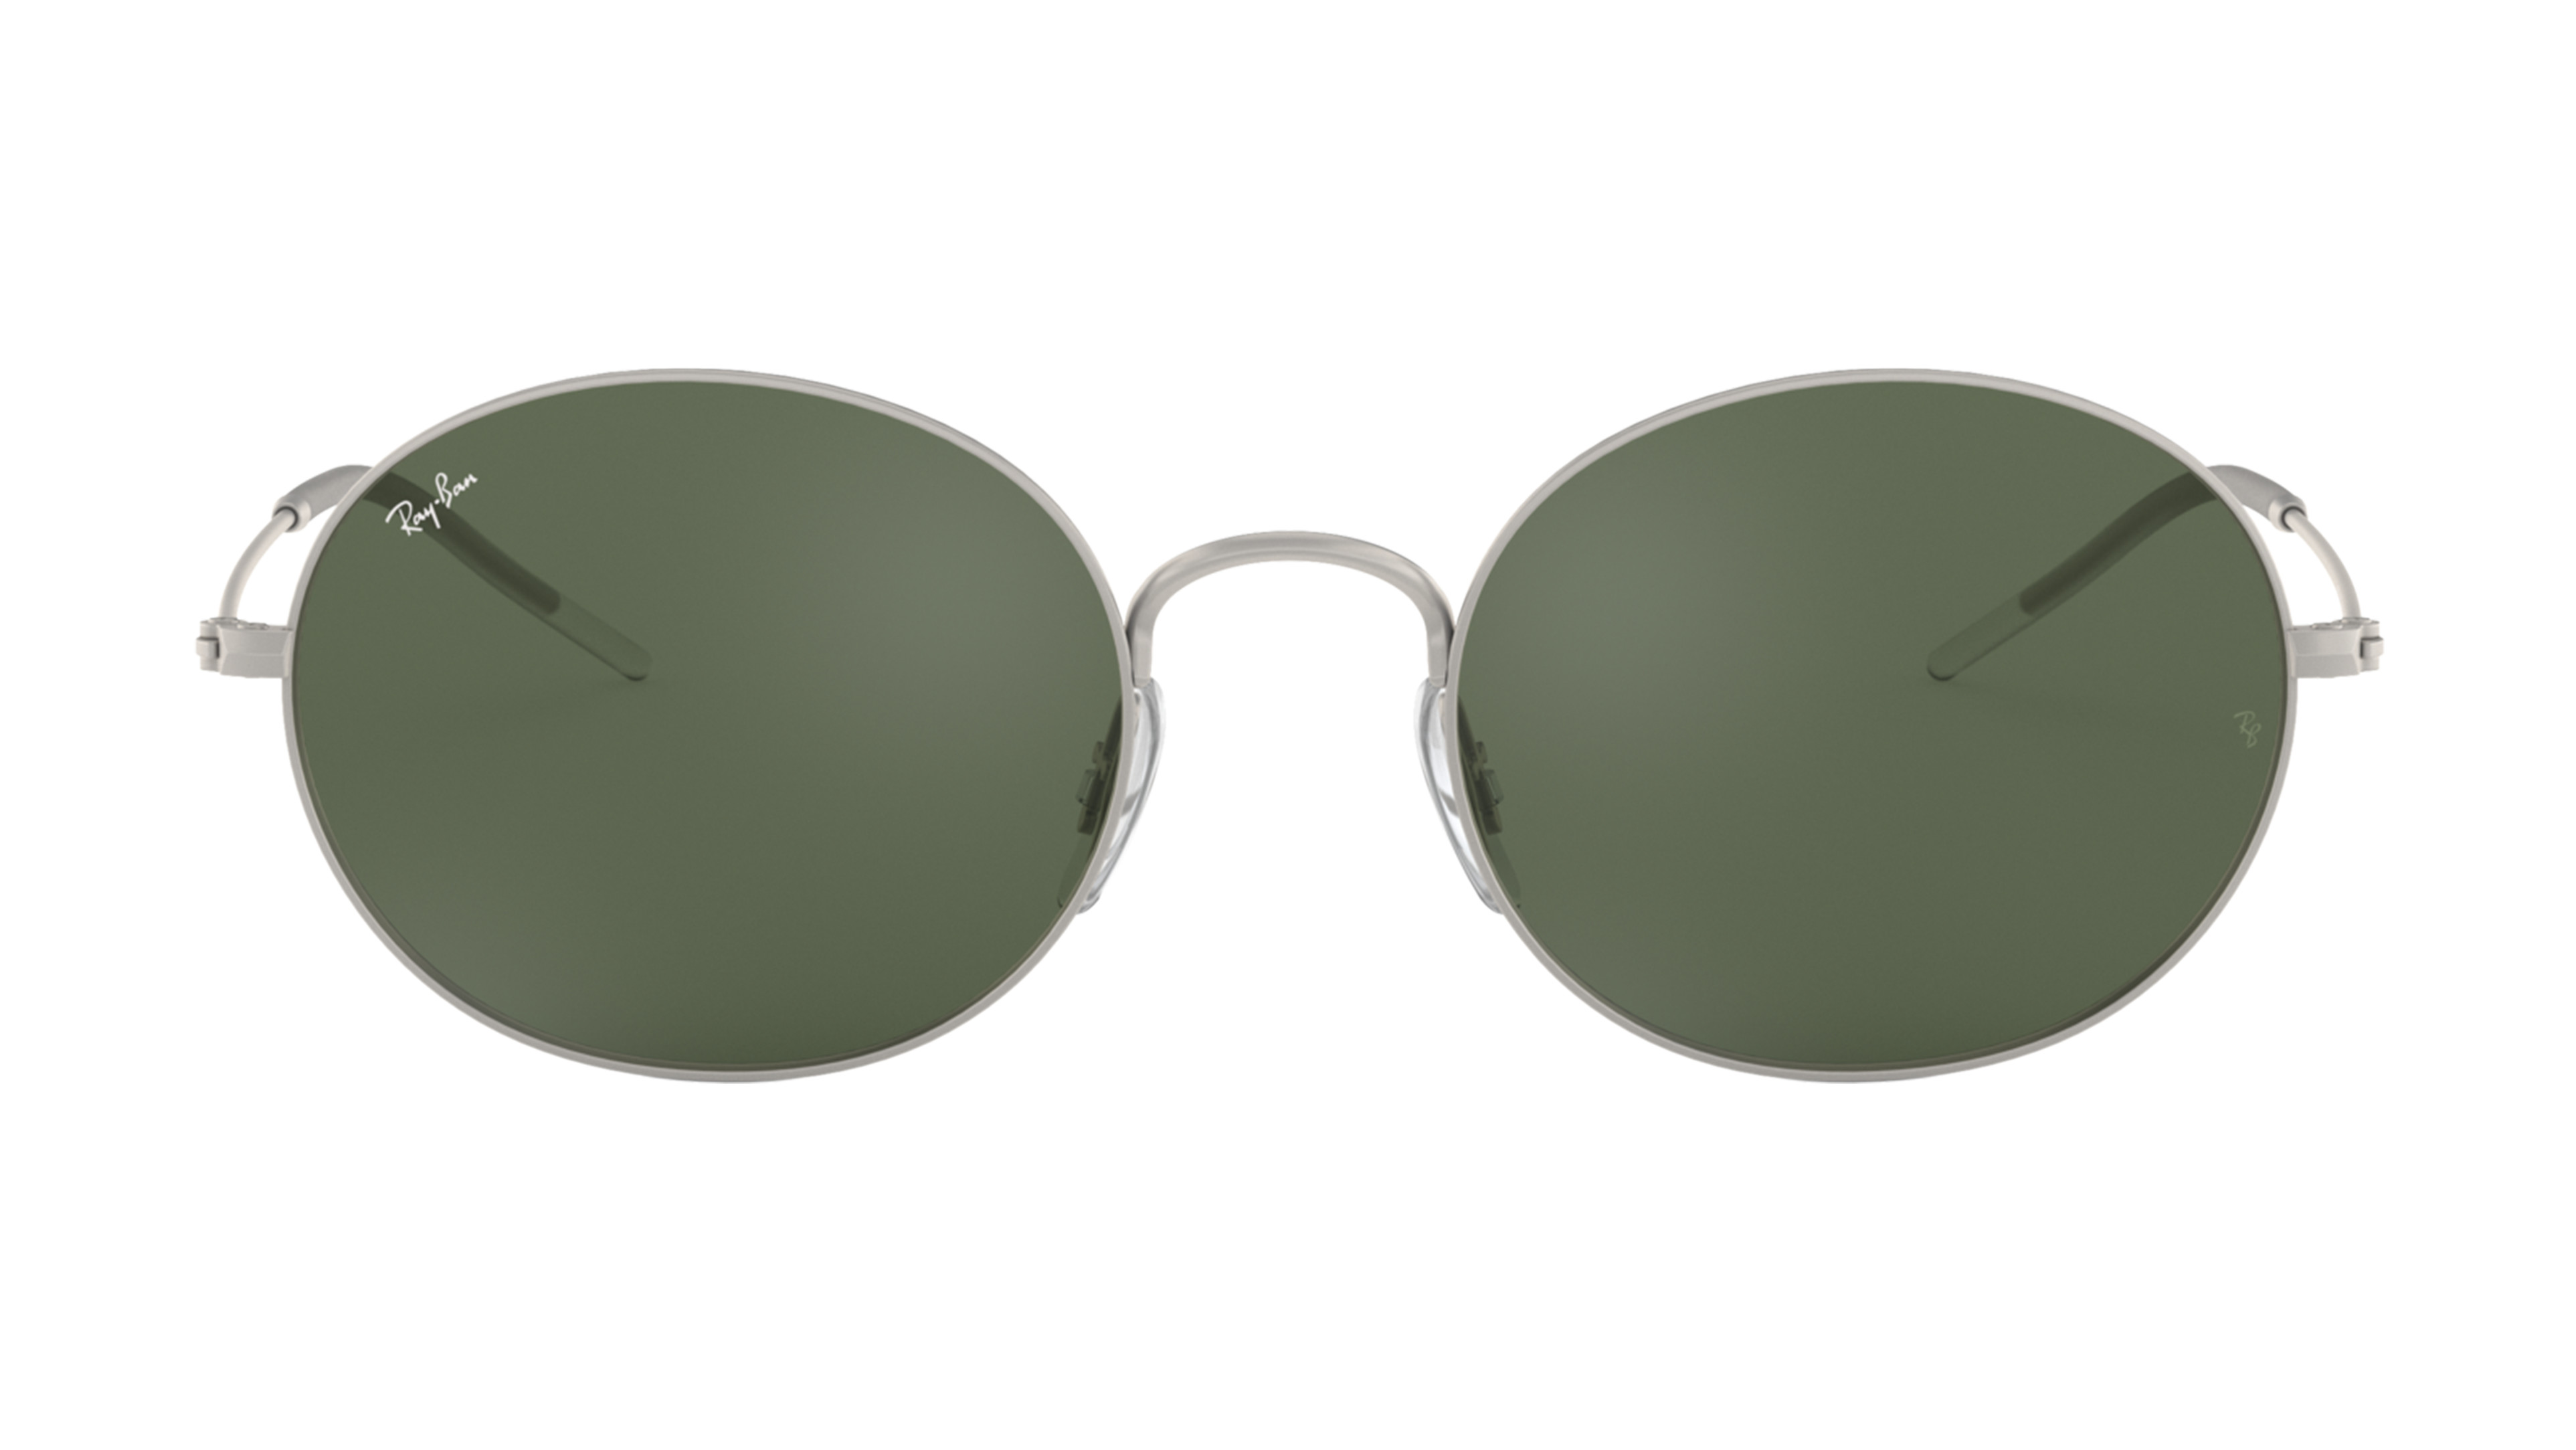 8053672929539-front-Ray-Ban-0RB3594-911671